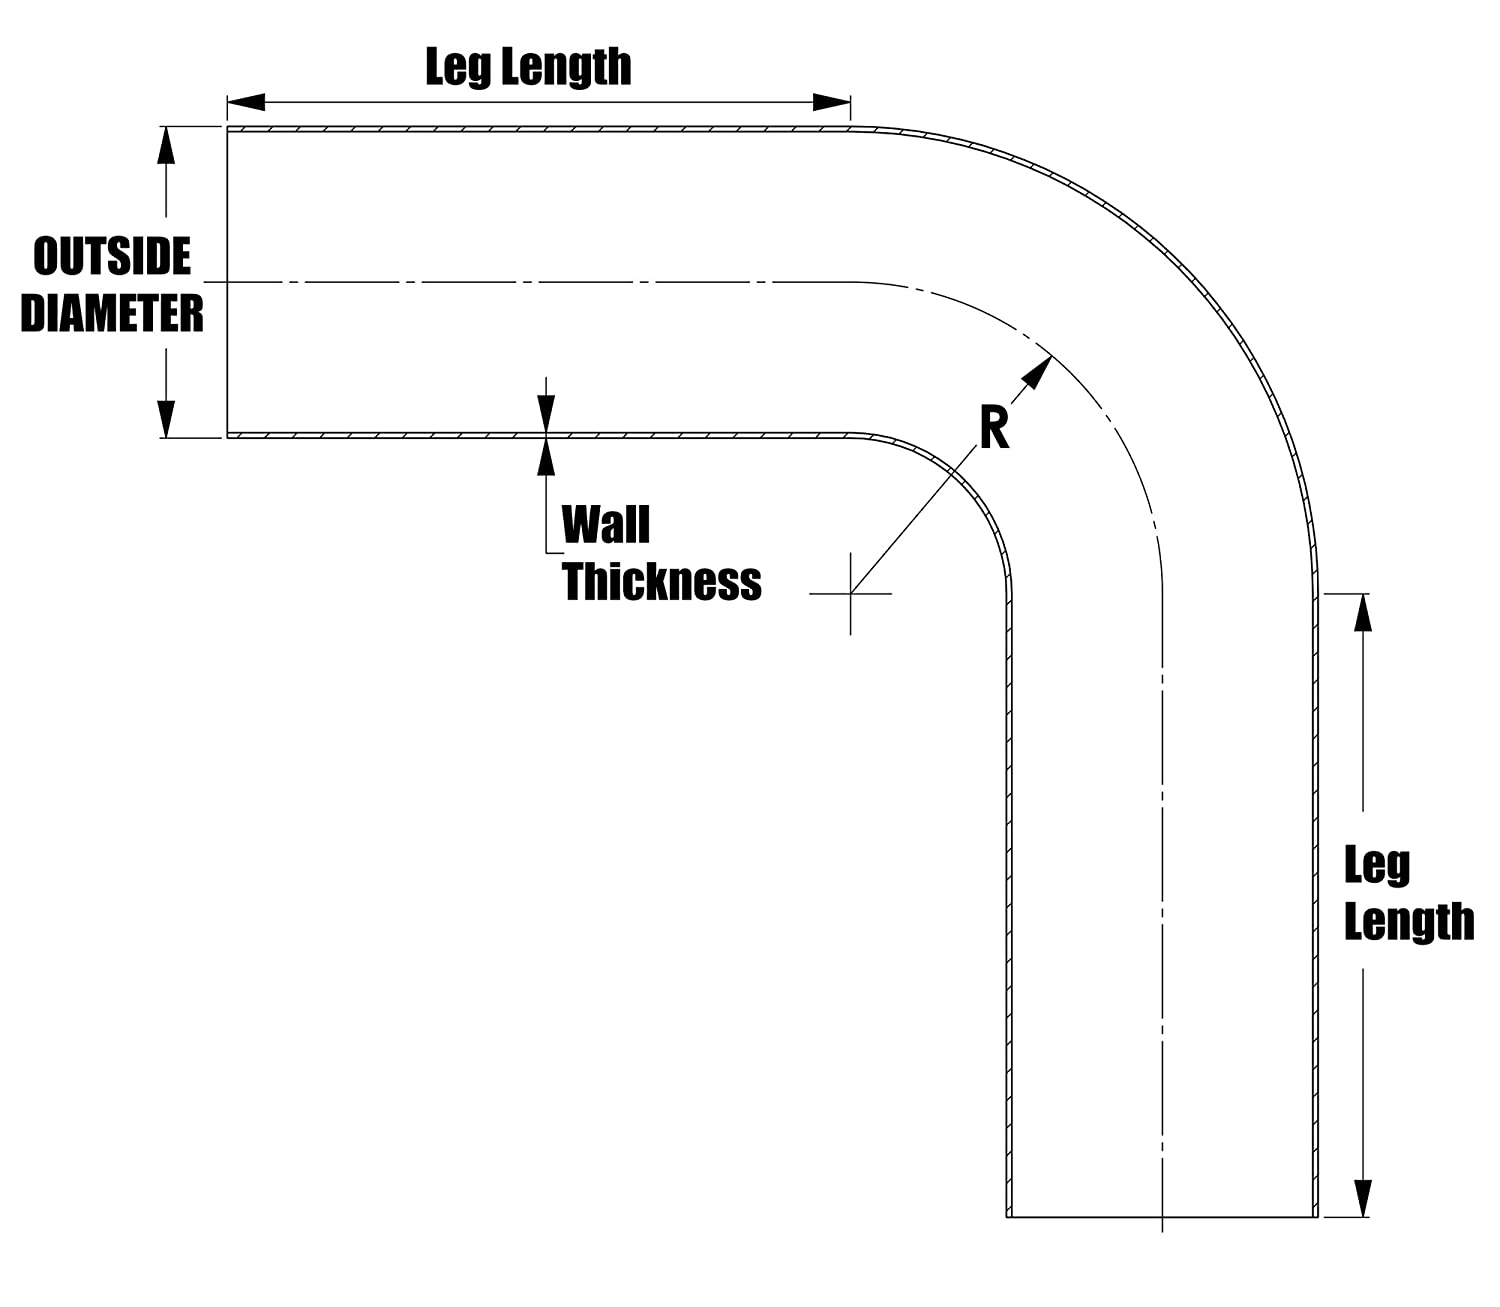 2 Clr Aluminum 6061 T6 Seamless 16 Gauge 90 Degree Bend Aluminum Elbow Tubing ALE90-91814 Wall Thickness: 0.065 1.62 OD 6 Leg Length on Each Side HPS 1-5//8 OD